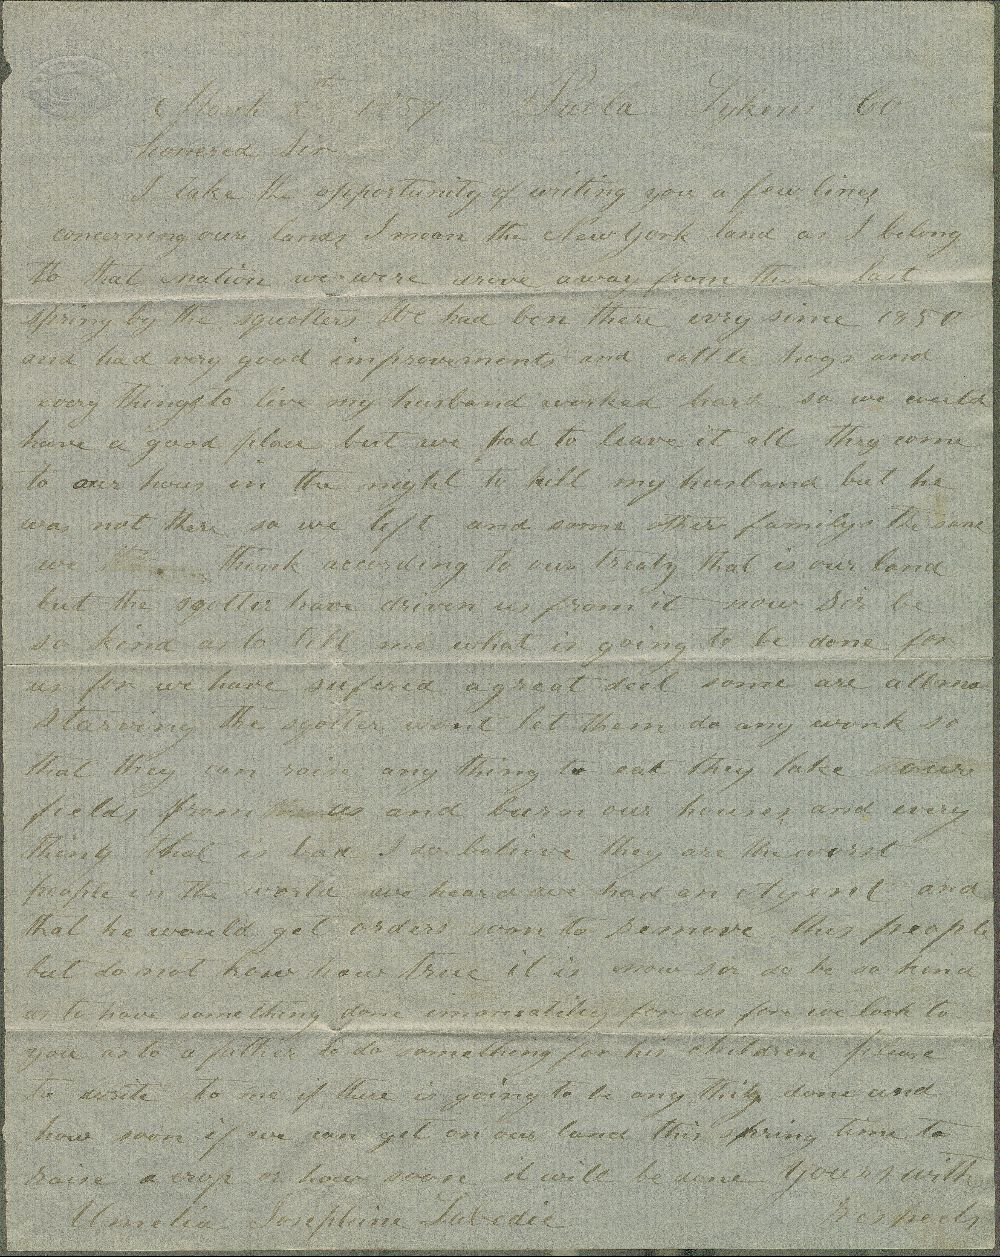 Amelia Josephine Labedia to James W. Denver - 1